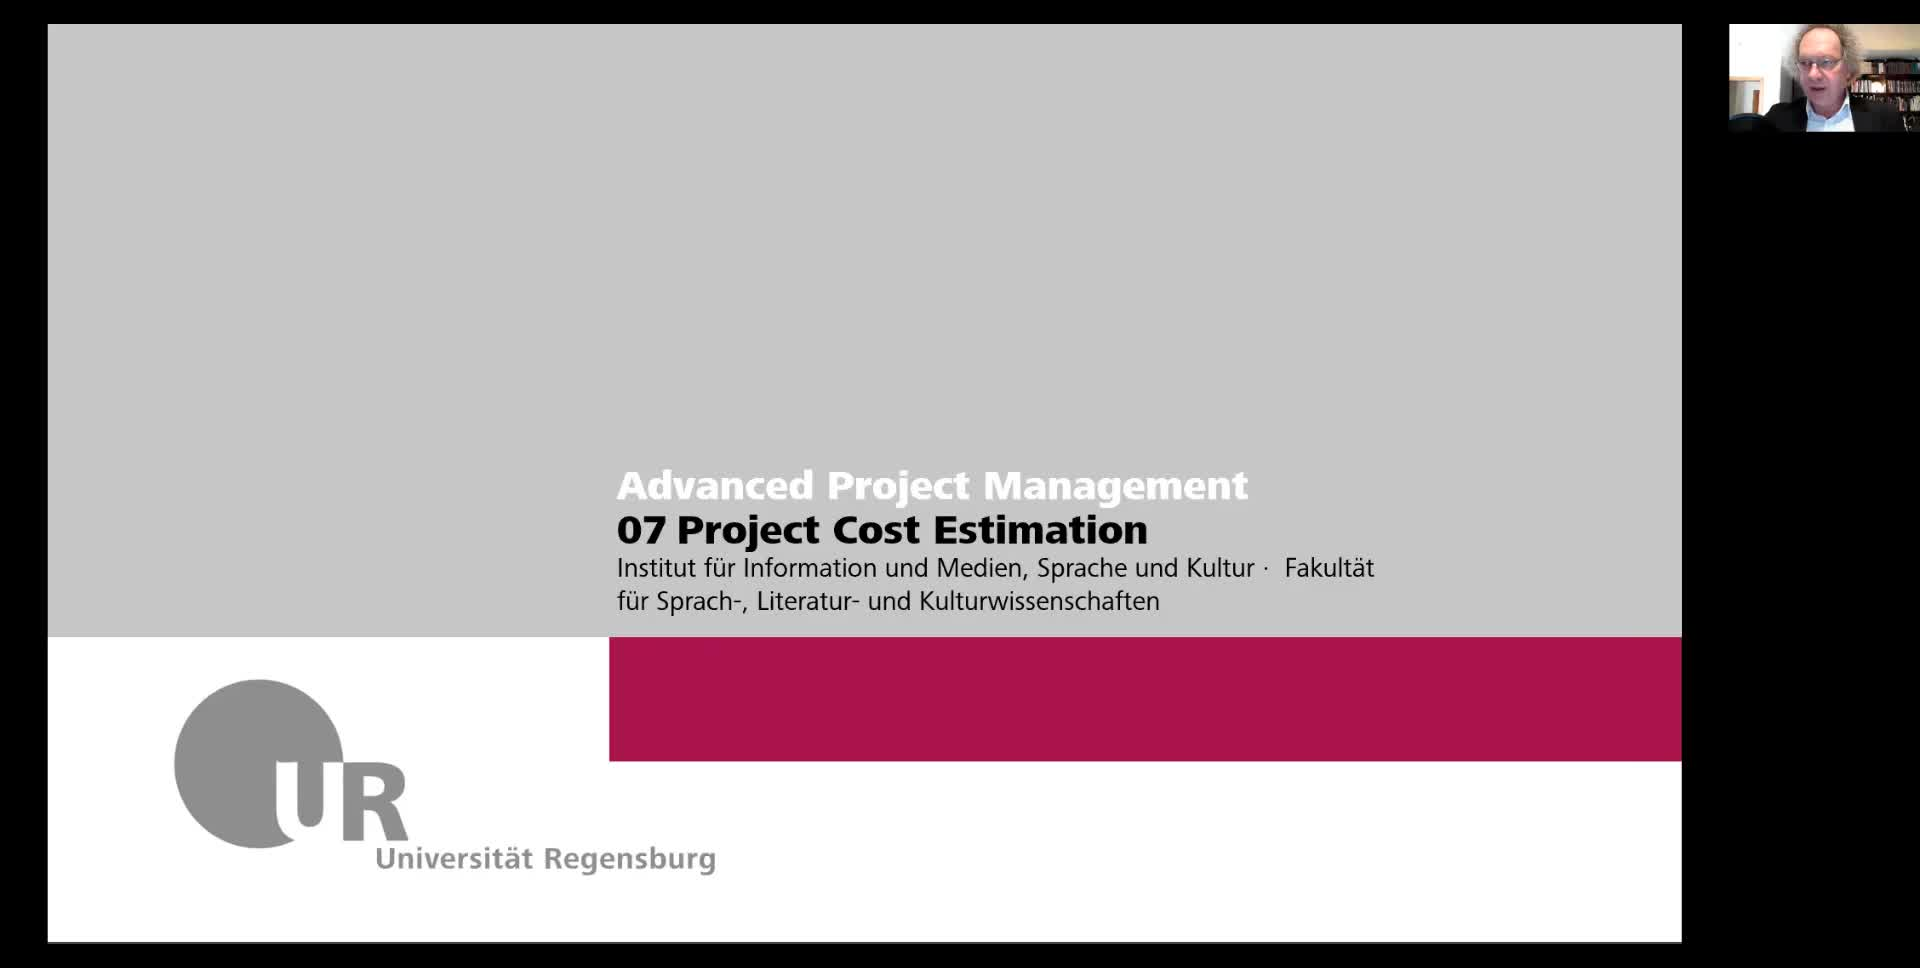 Advanced IT Project Management WS 2021: 07b Cost Estimation